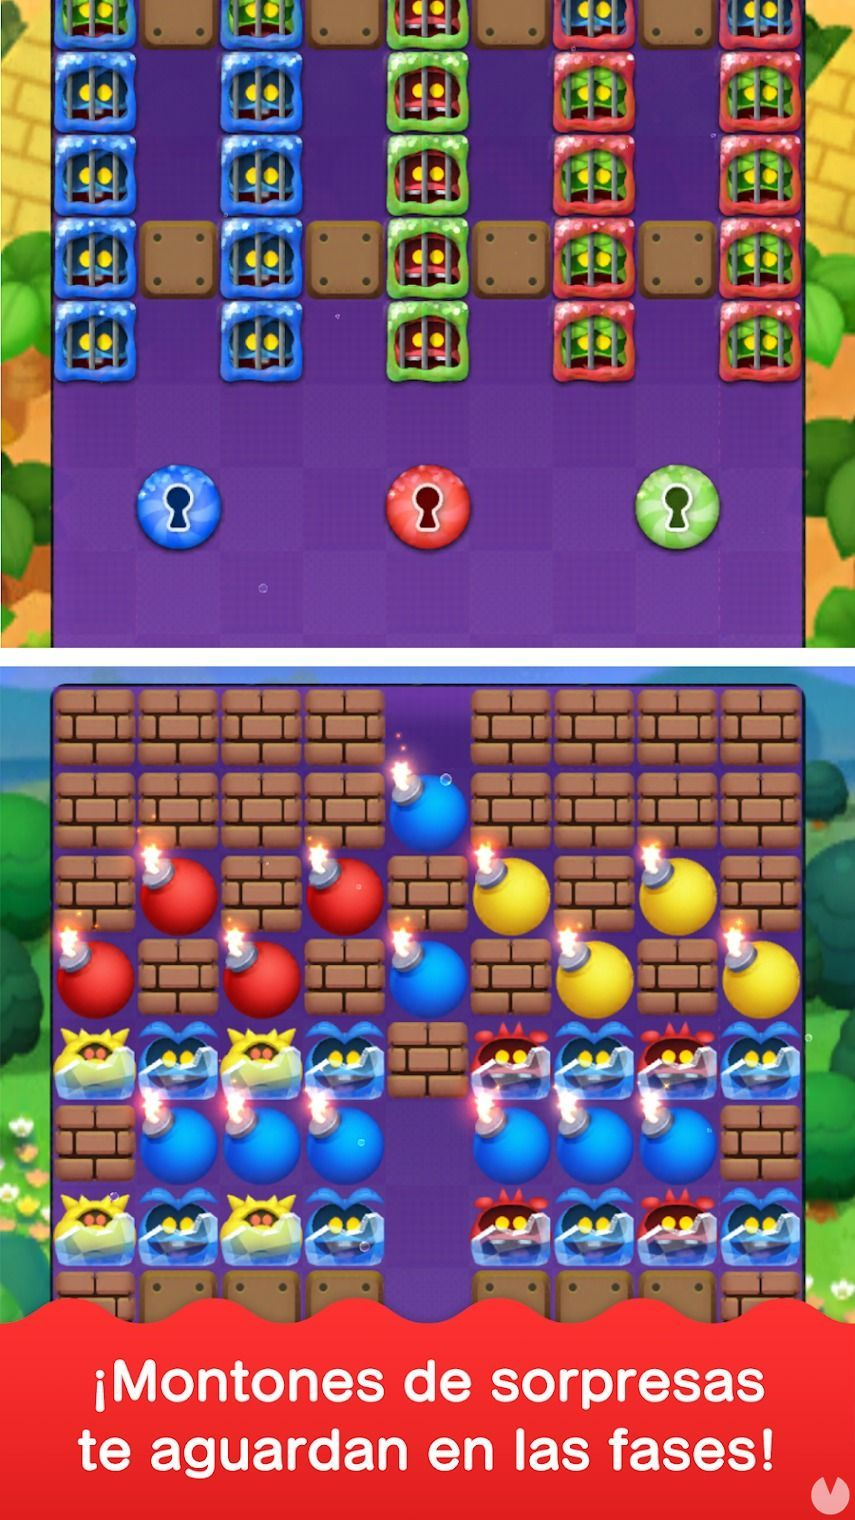 Dr. Mario World is already available for free download in mobile iOS and Android